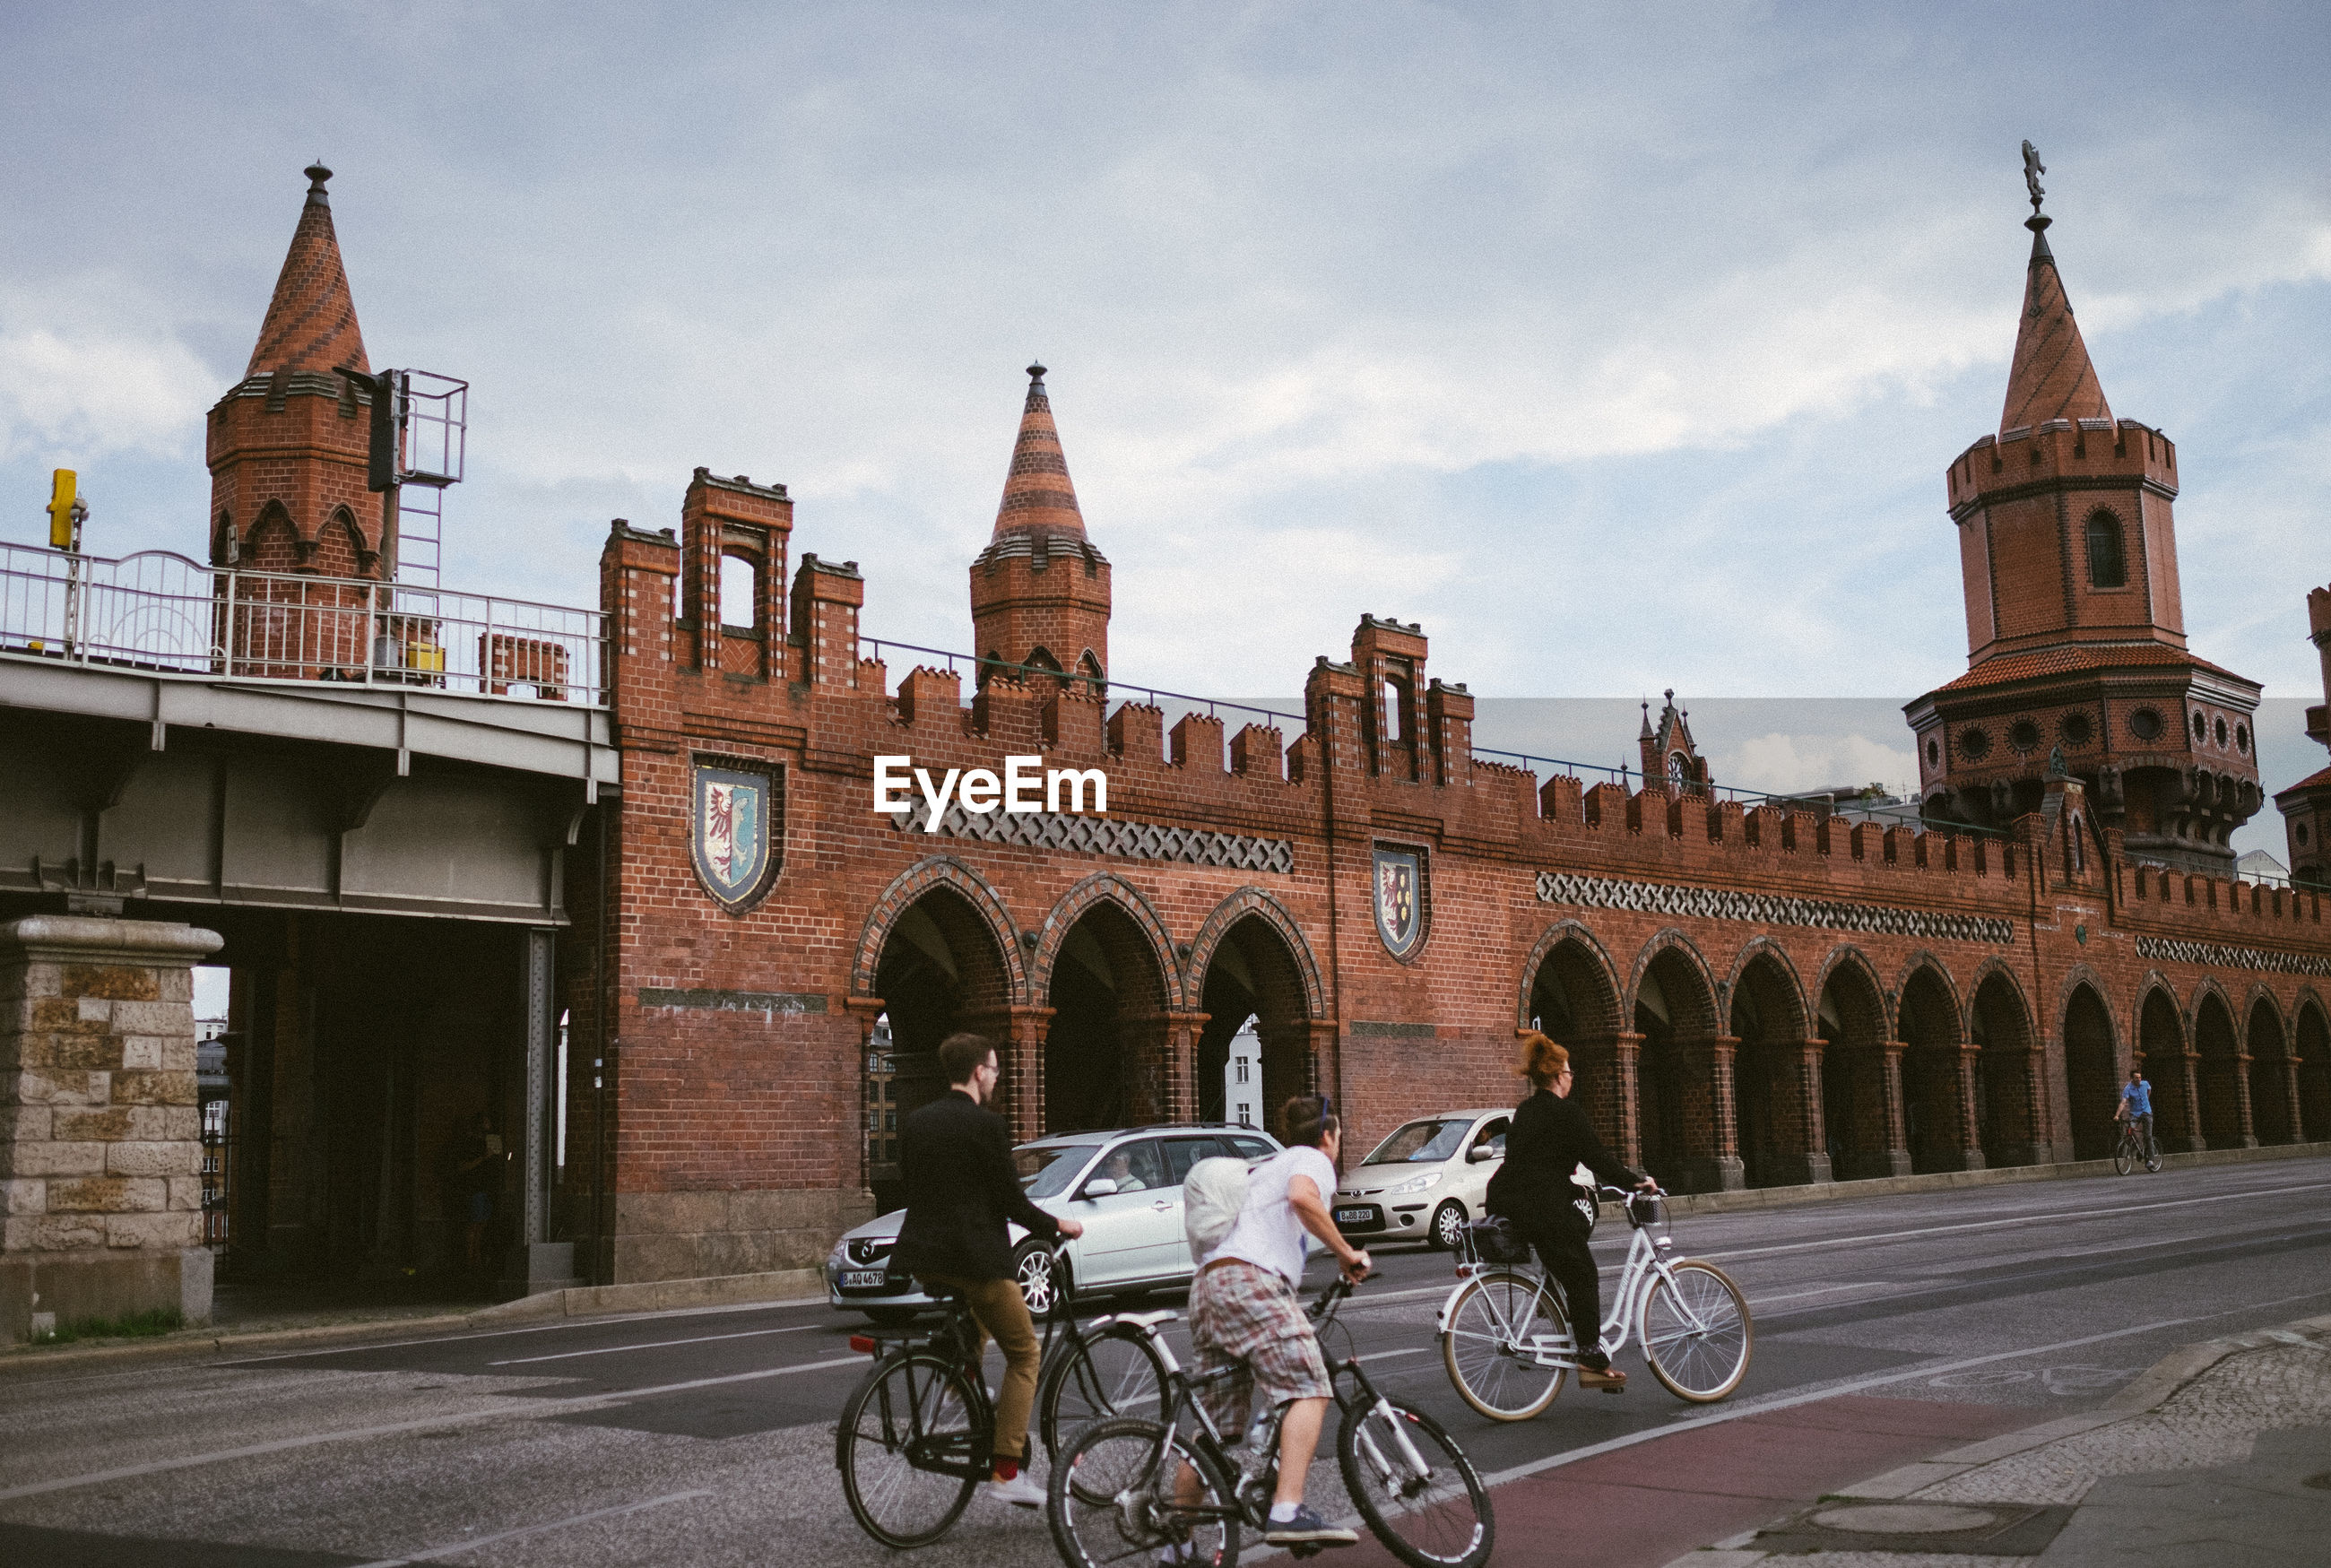 BICYCLES IN A CITY